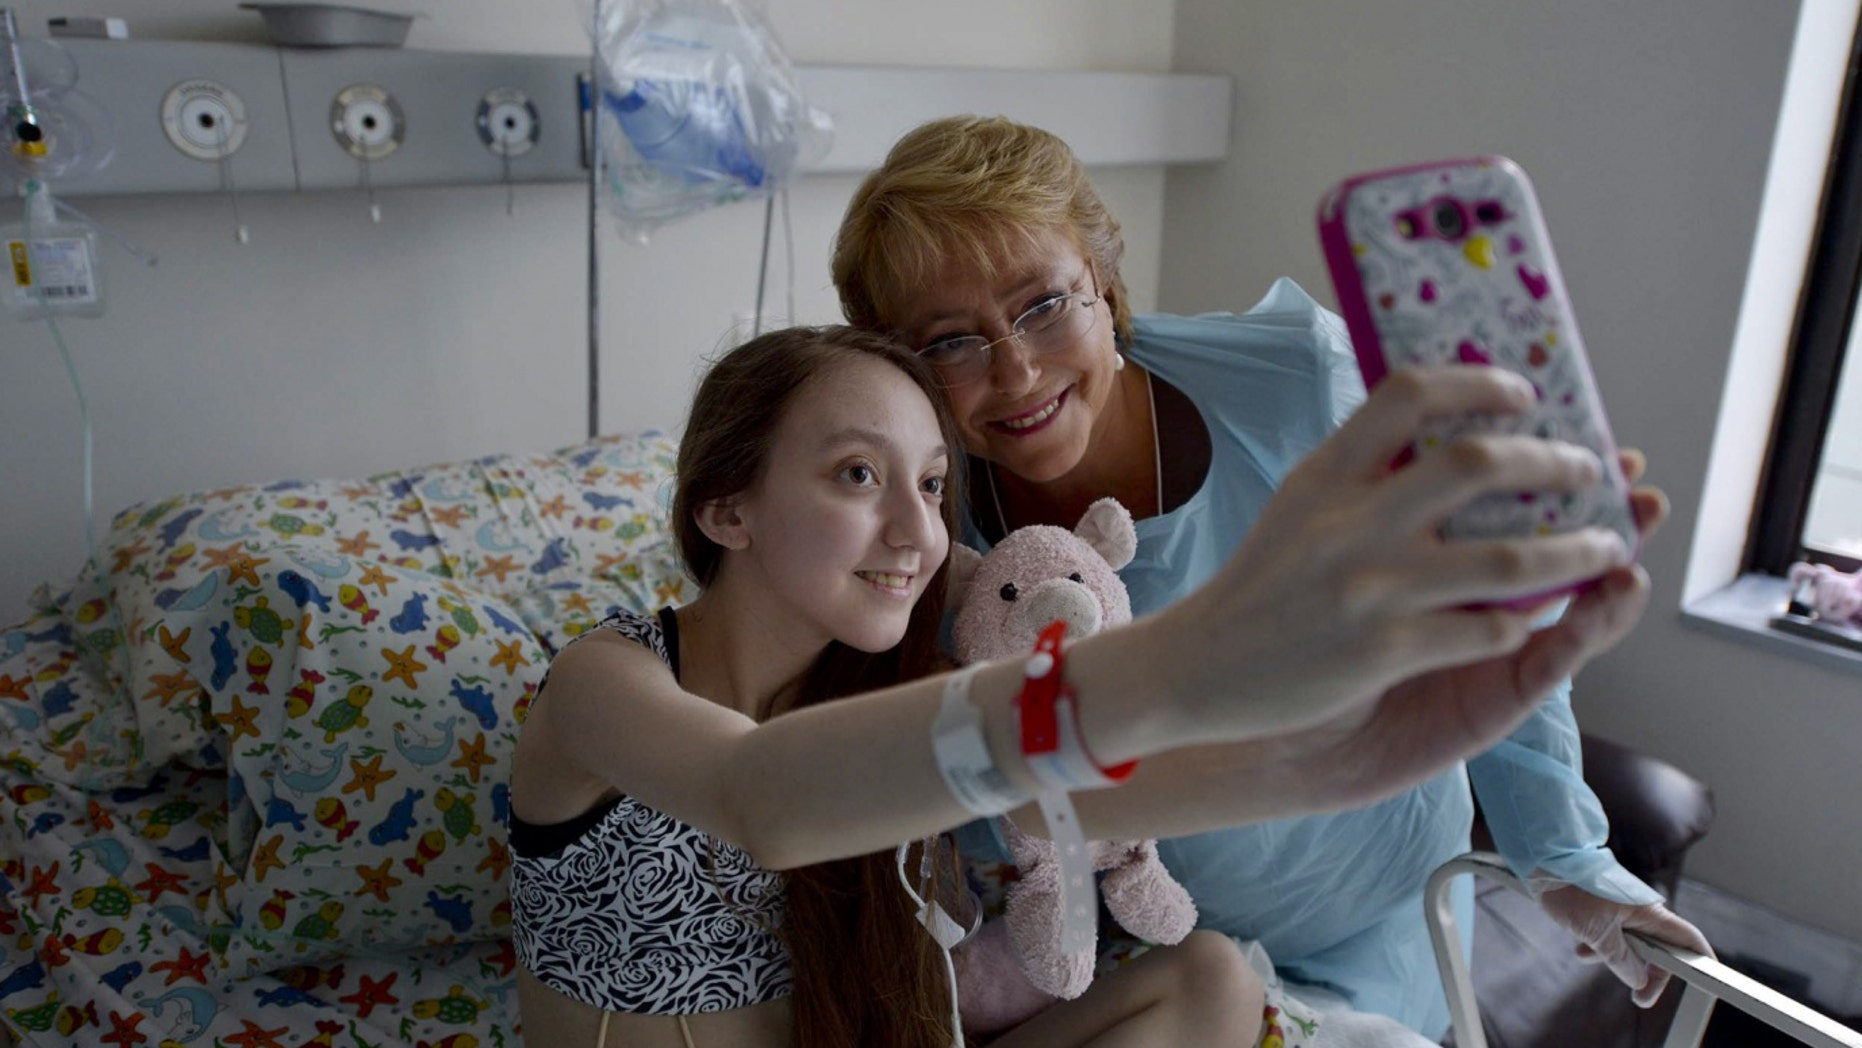 """In this photo released by Chile's presidential press office, President Michelle Bachelet, right, poses for a selfie with Valentina Maureira, who suffers from cystic fibrosis, at a hospital in Santiago, Chile, Saturday, Feb. 28, 2015. Maureira posted a video on the web asking a meeting with Bachelet to allow her to """"sleep for ever"""". (AP Photo/Chile's presidential press office"""